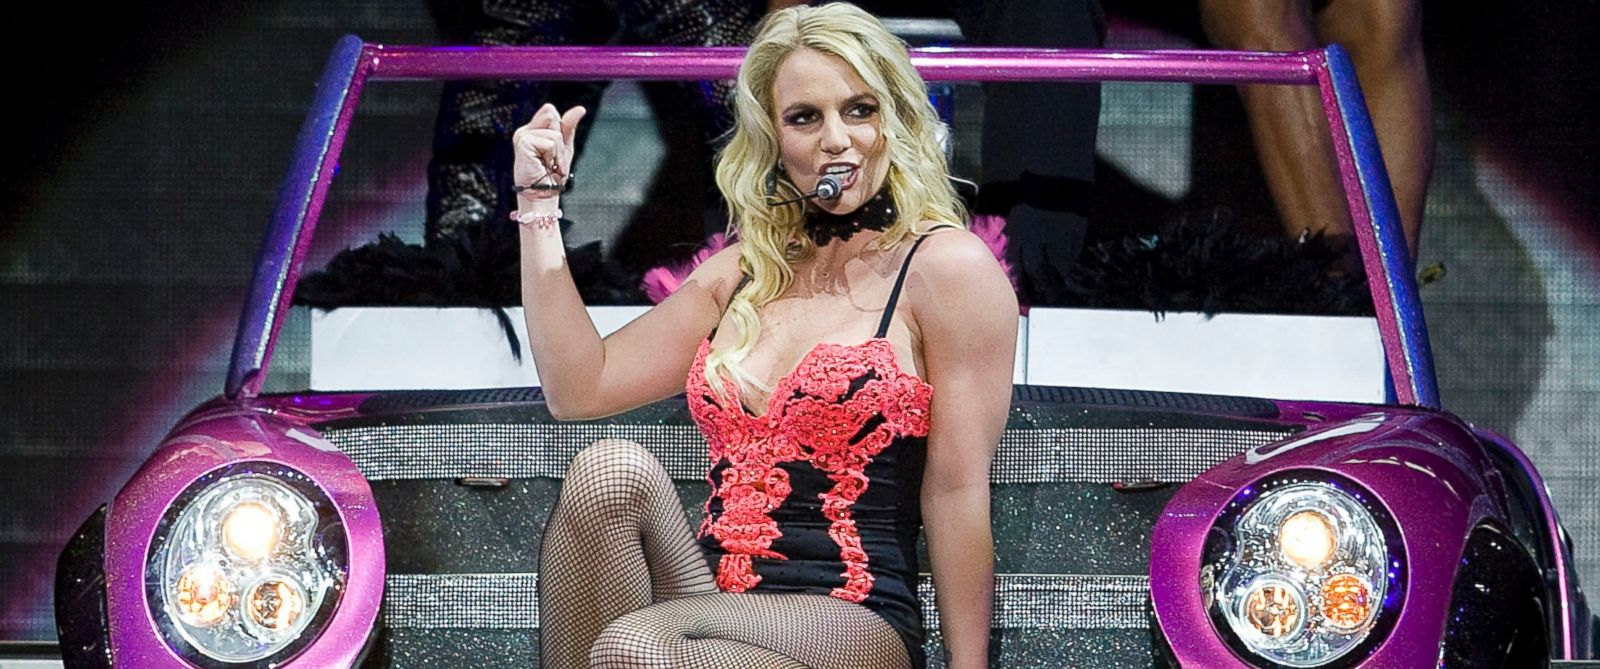 PHOTO: Britney Spears at the Foro Sol in Mexico City, Mexico, Dec. 3, 2011.